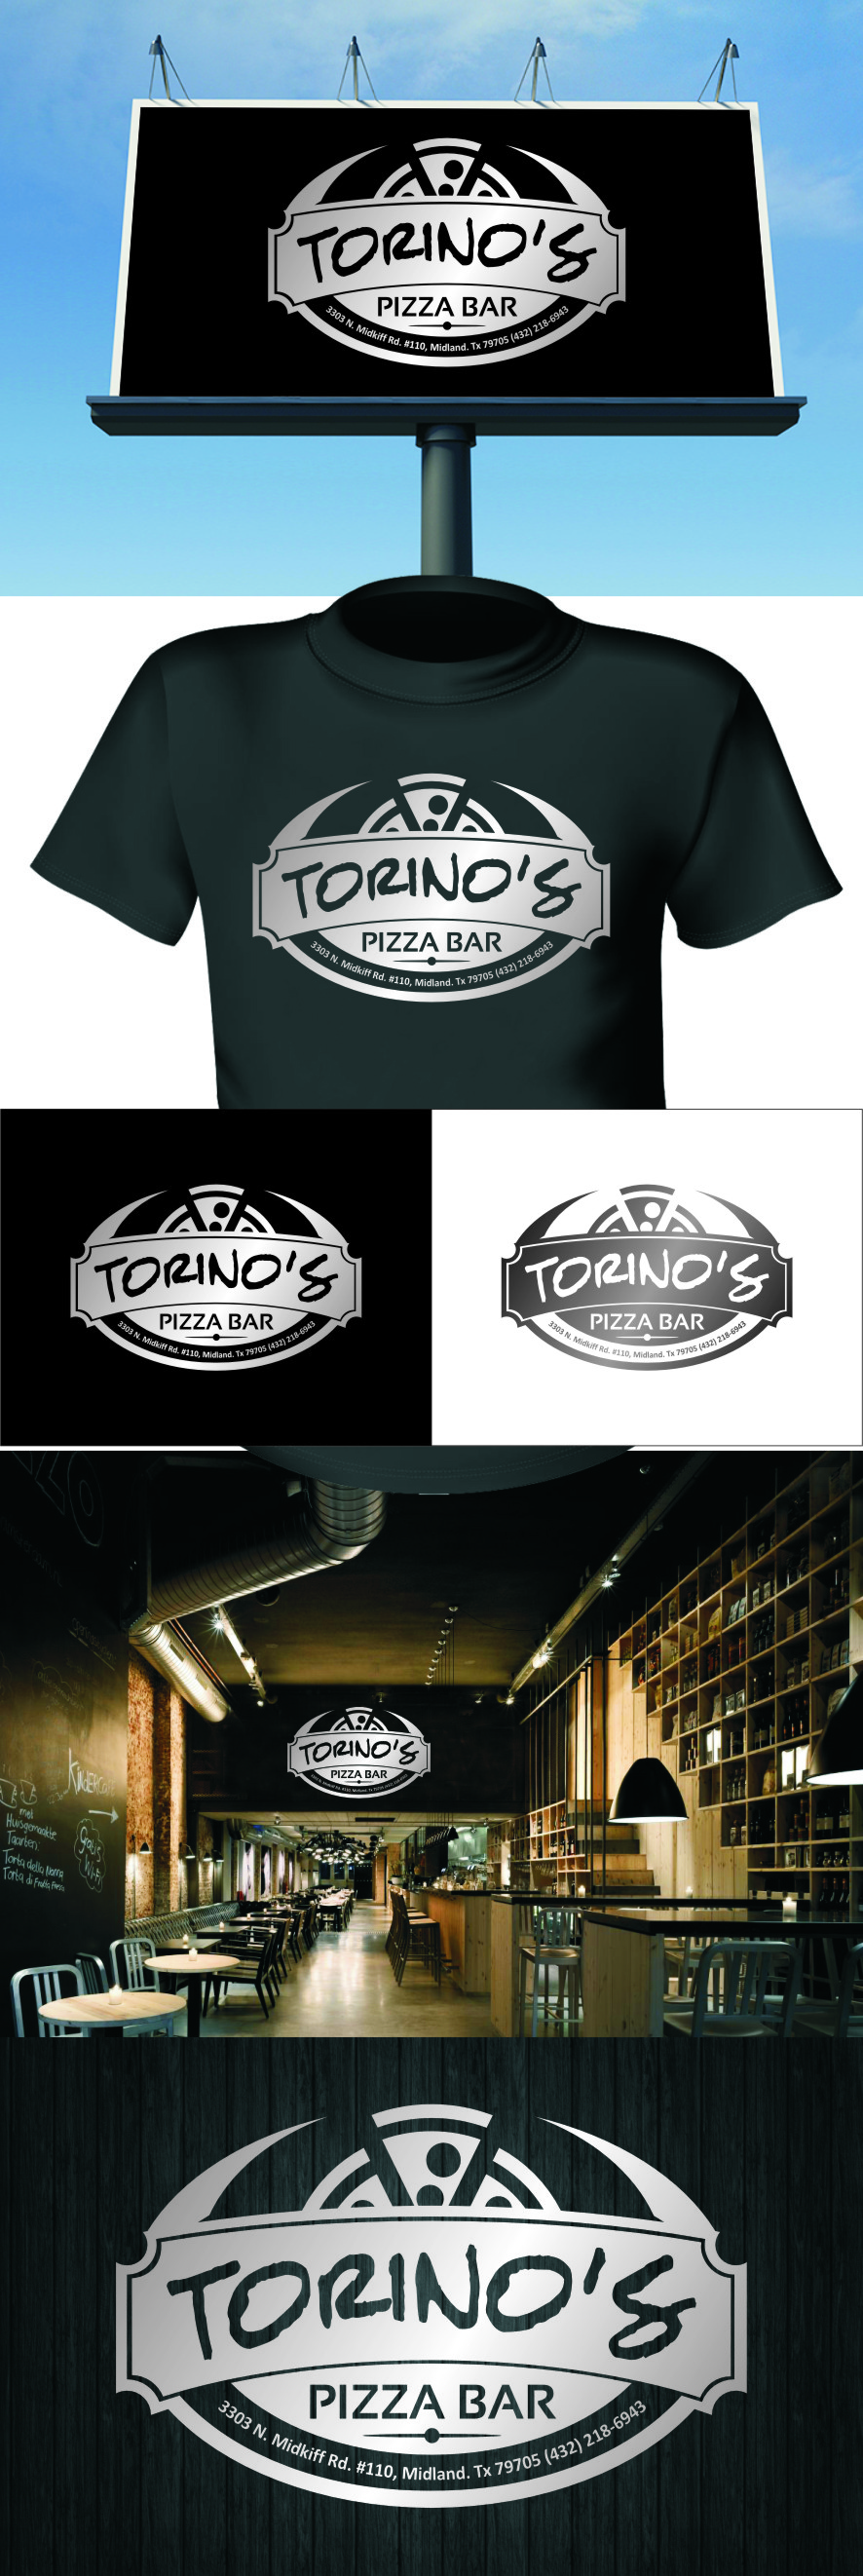 Custom Design by RasYa Muhammad Athaya - Entry No. 45 in the Custom Design Contest Torino's Pizza Bar Custom Design.